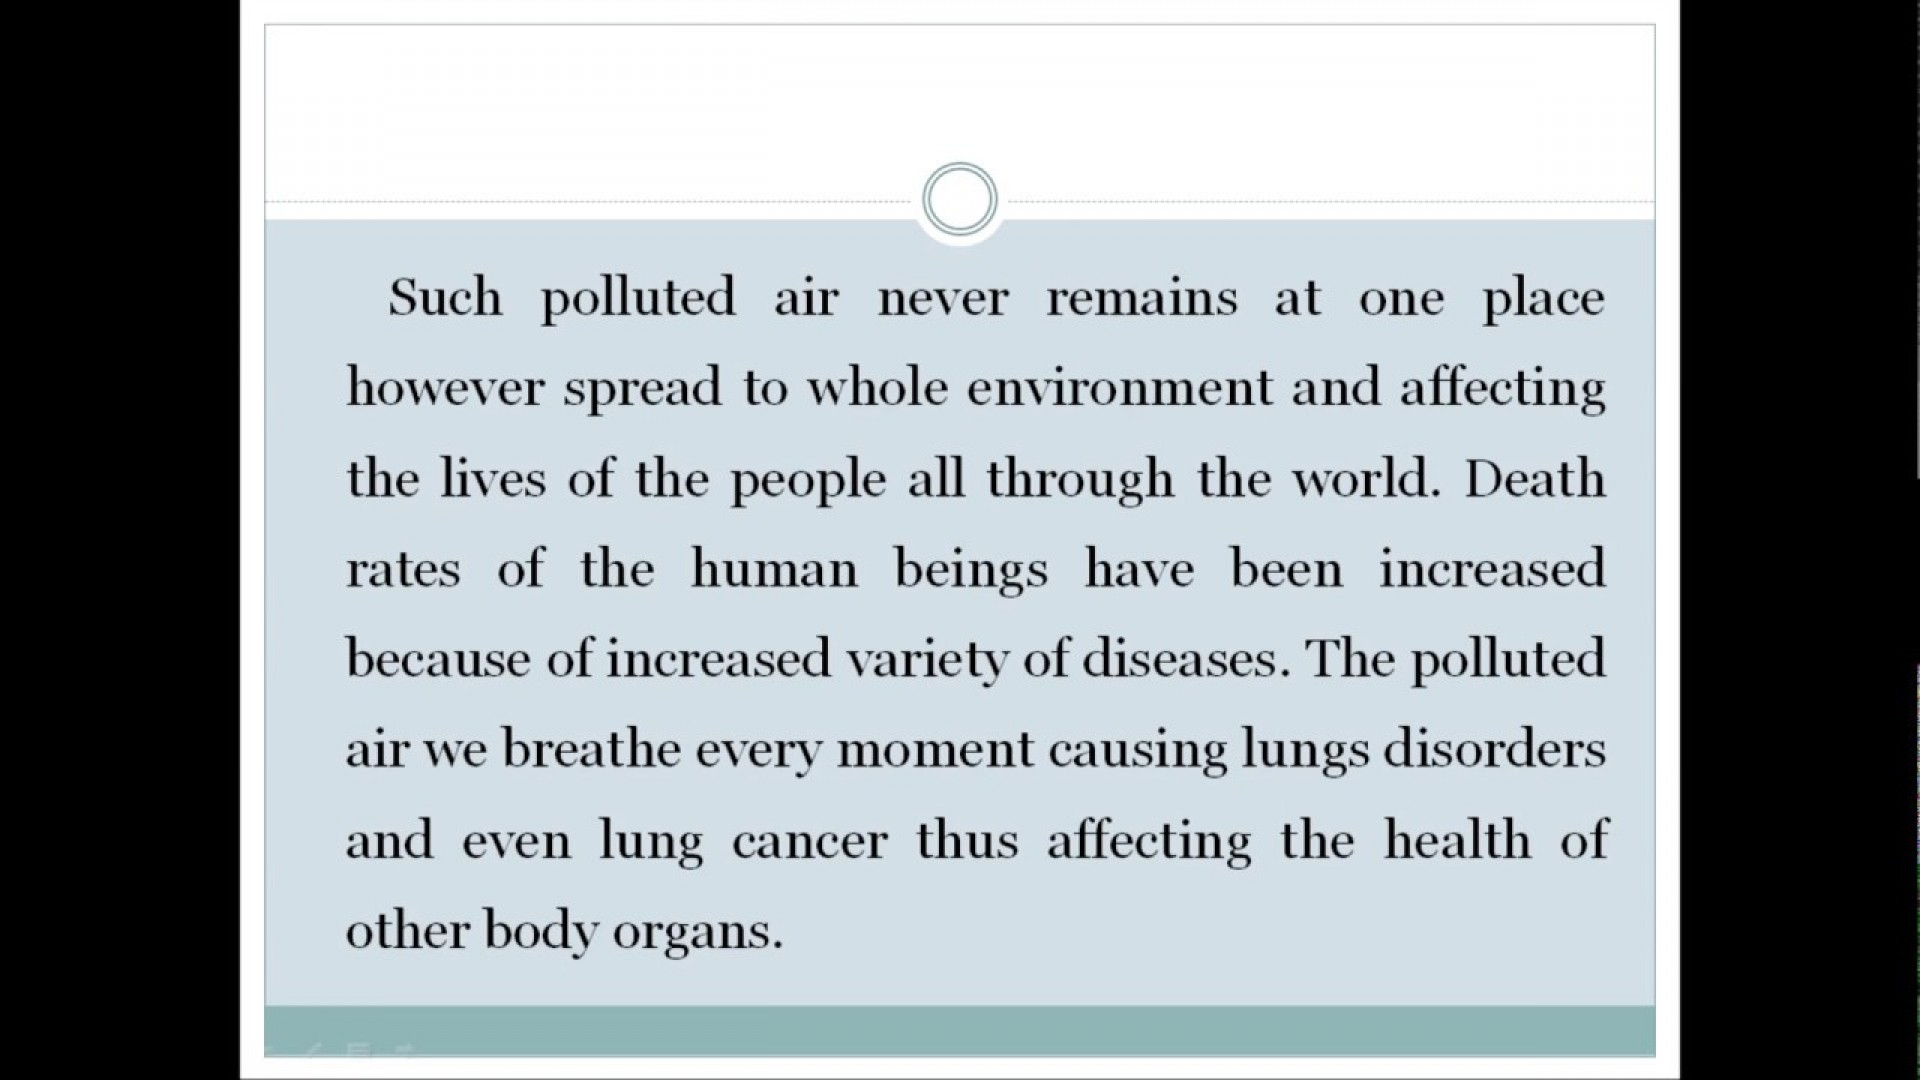 012 Essay Example Cause And Effect On Pollution Astounding Environmental Of About Air 1920